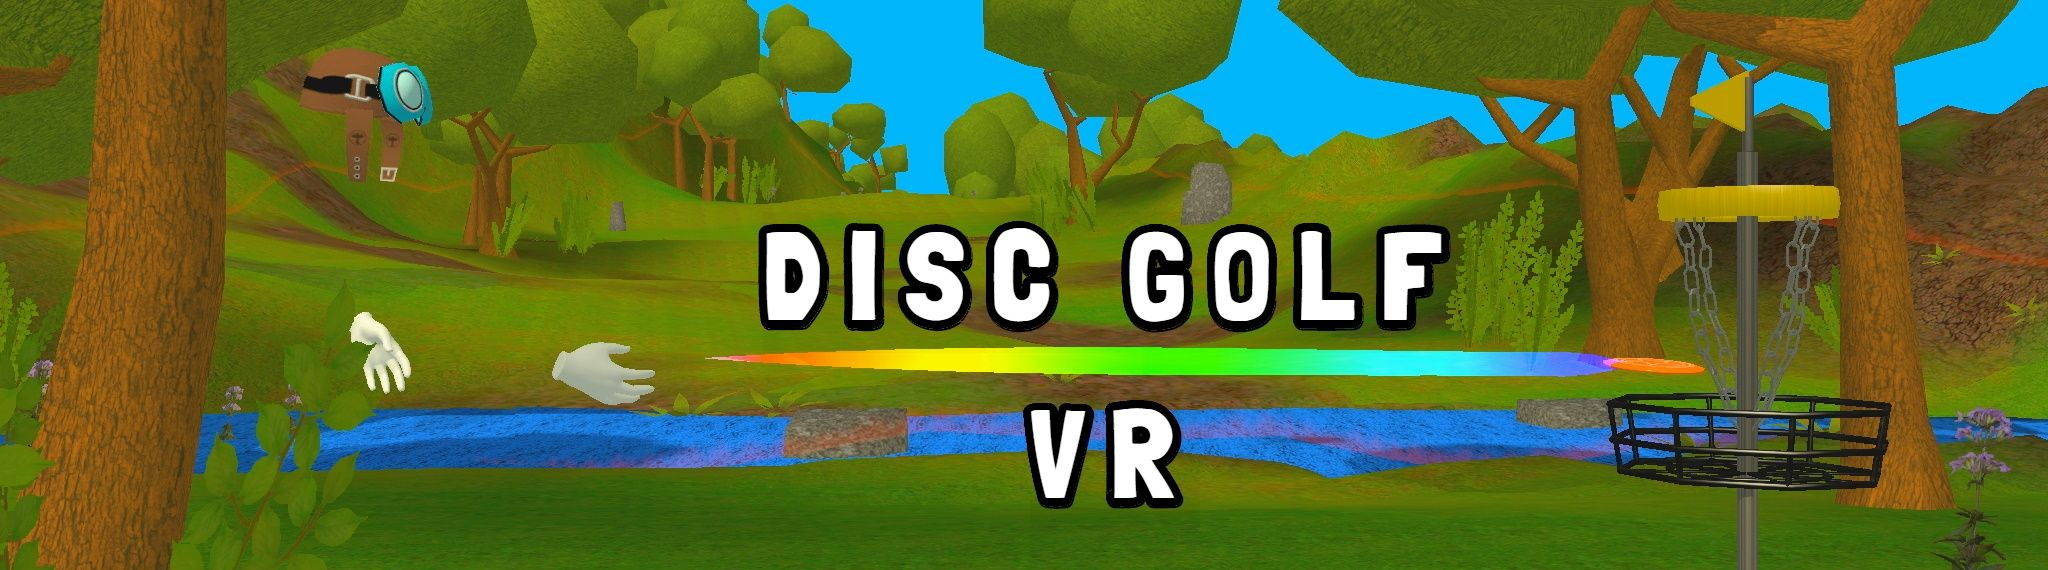 DiscGolfVR version 5 is now live! in 2020 Virtual world